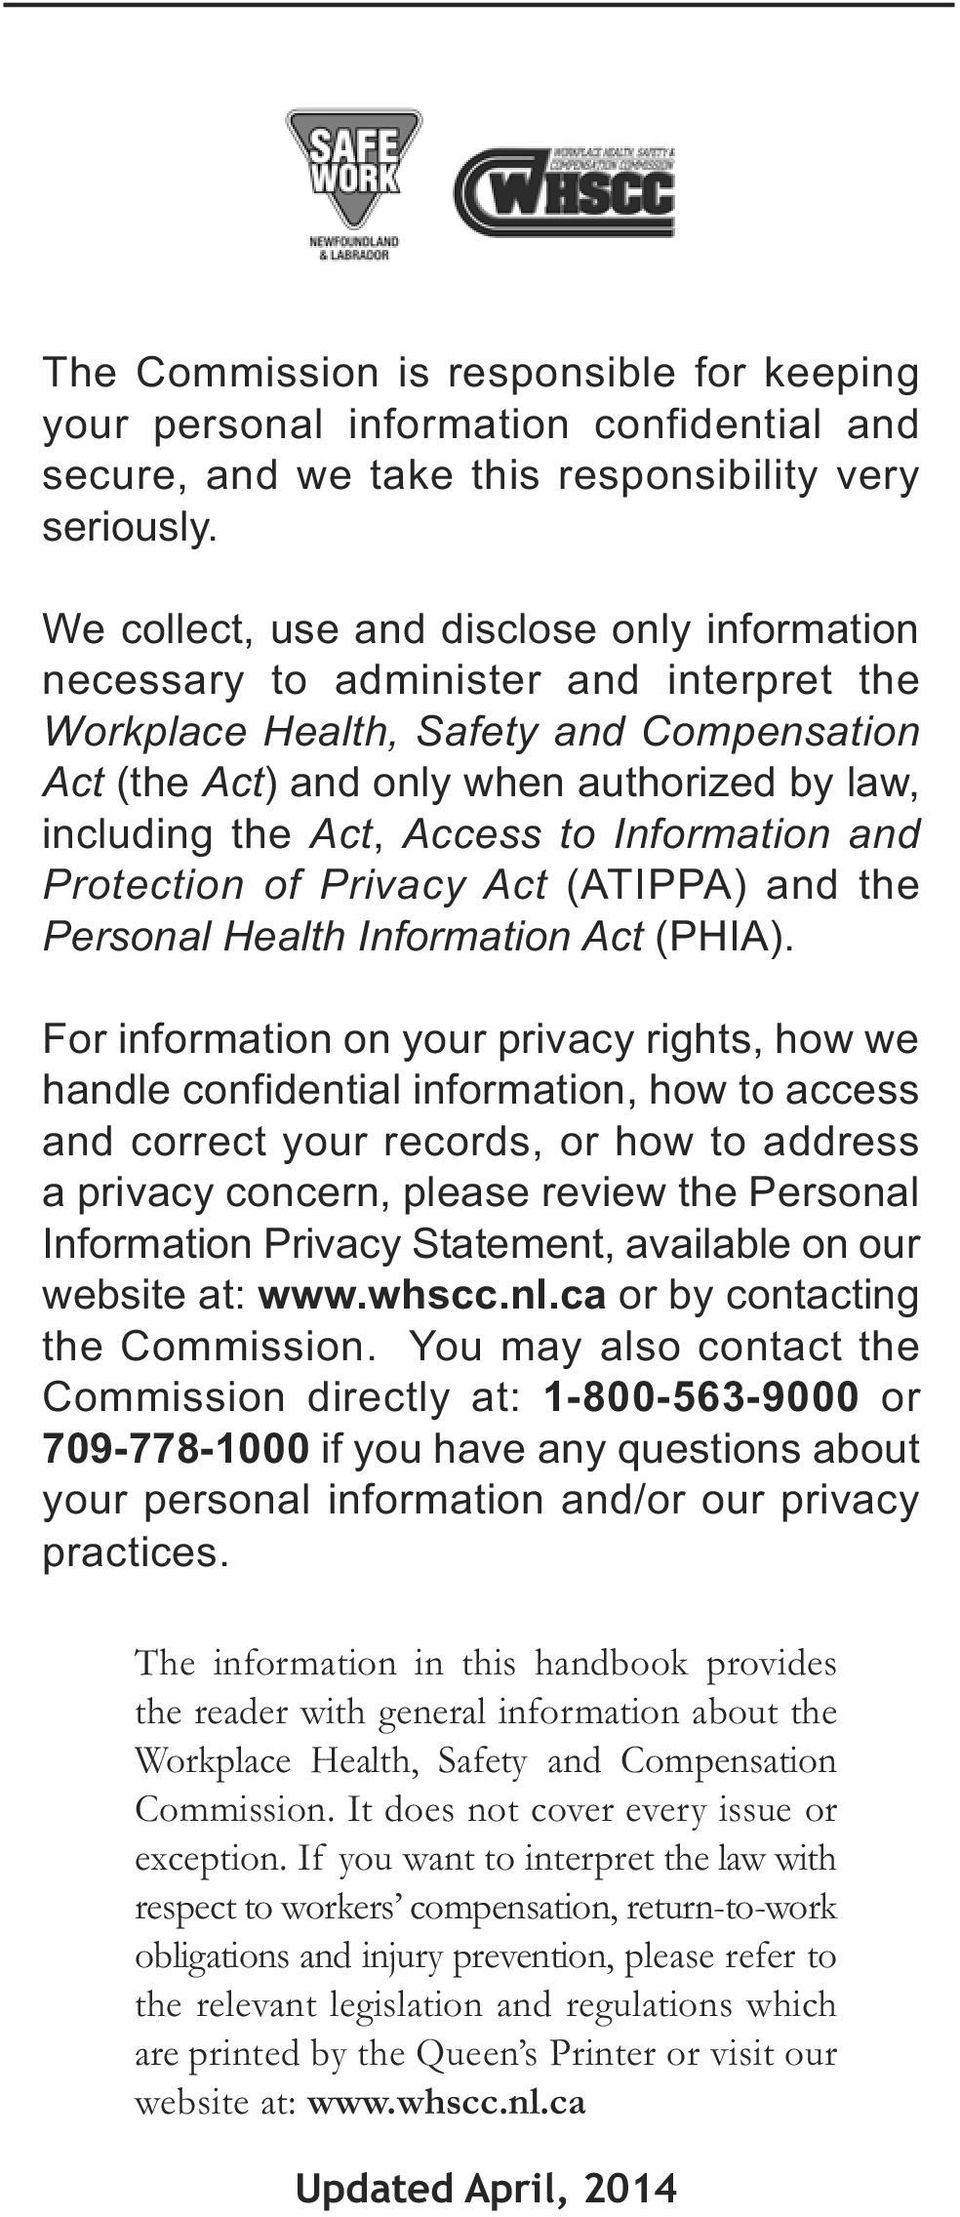 Access to Information and Protection of Privacy Act (ATIPPA) and the Personal Health Information Act (PHIA).